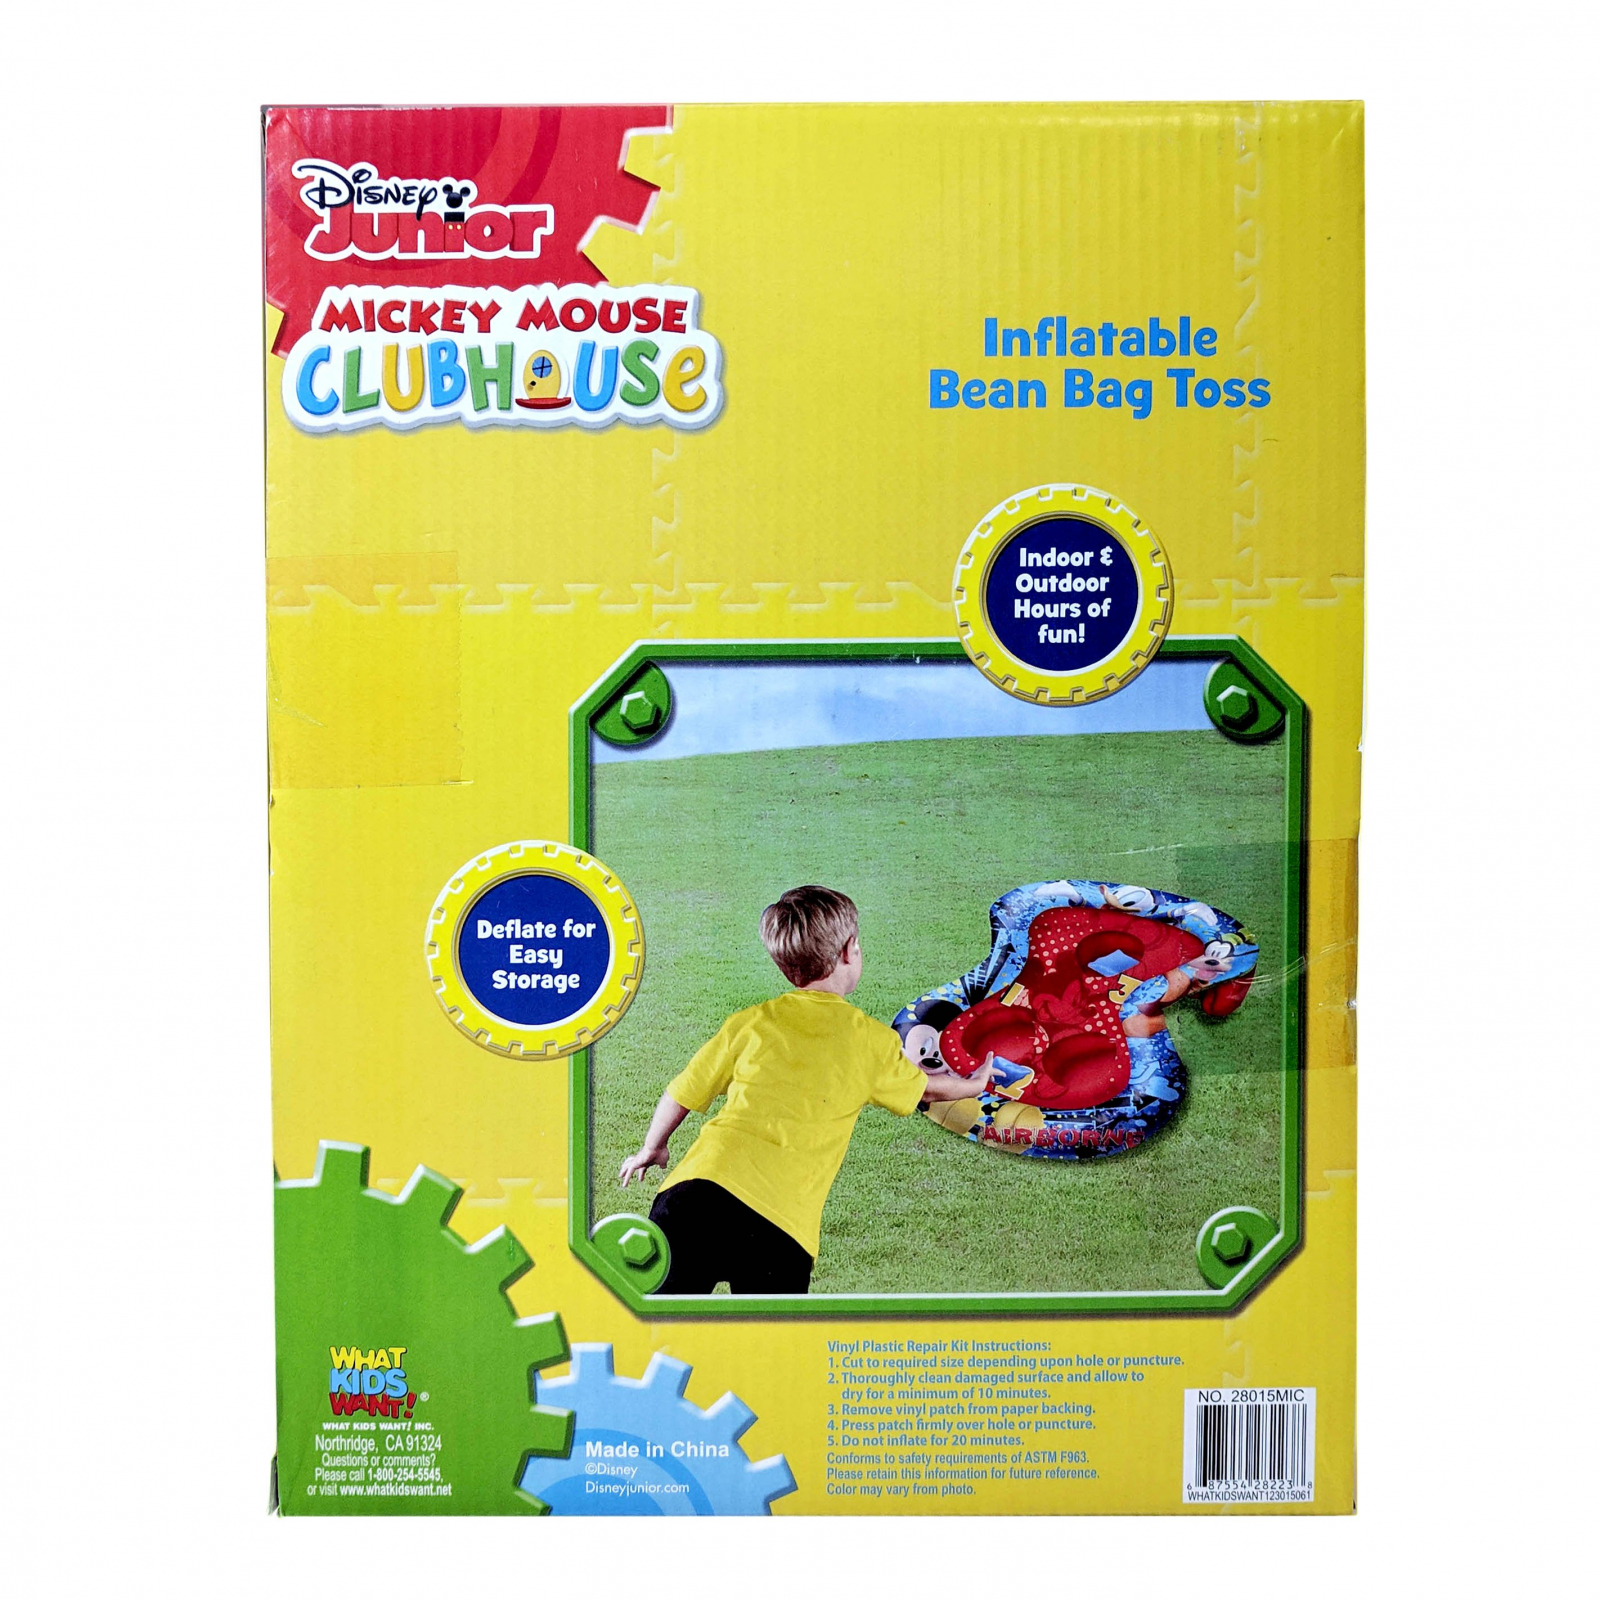 Mickey Mouse Clubhouse Inflatable Bean Bag Toss Game